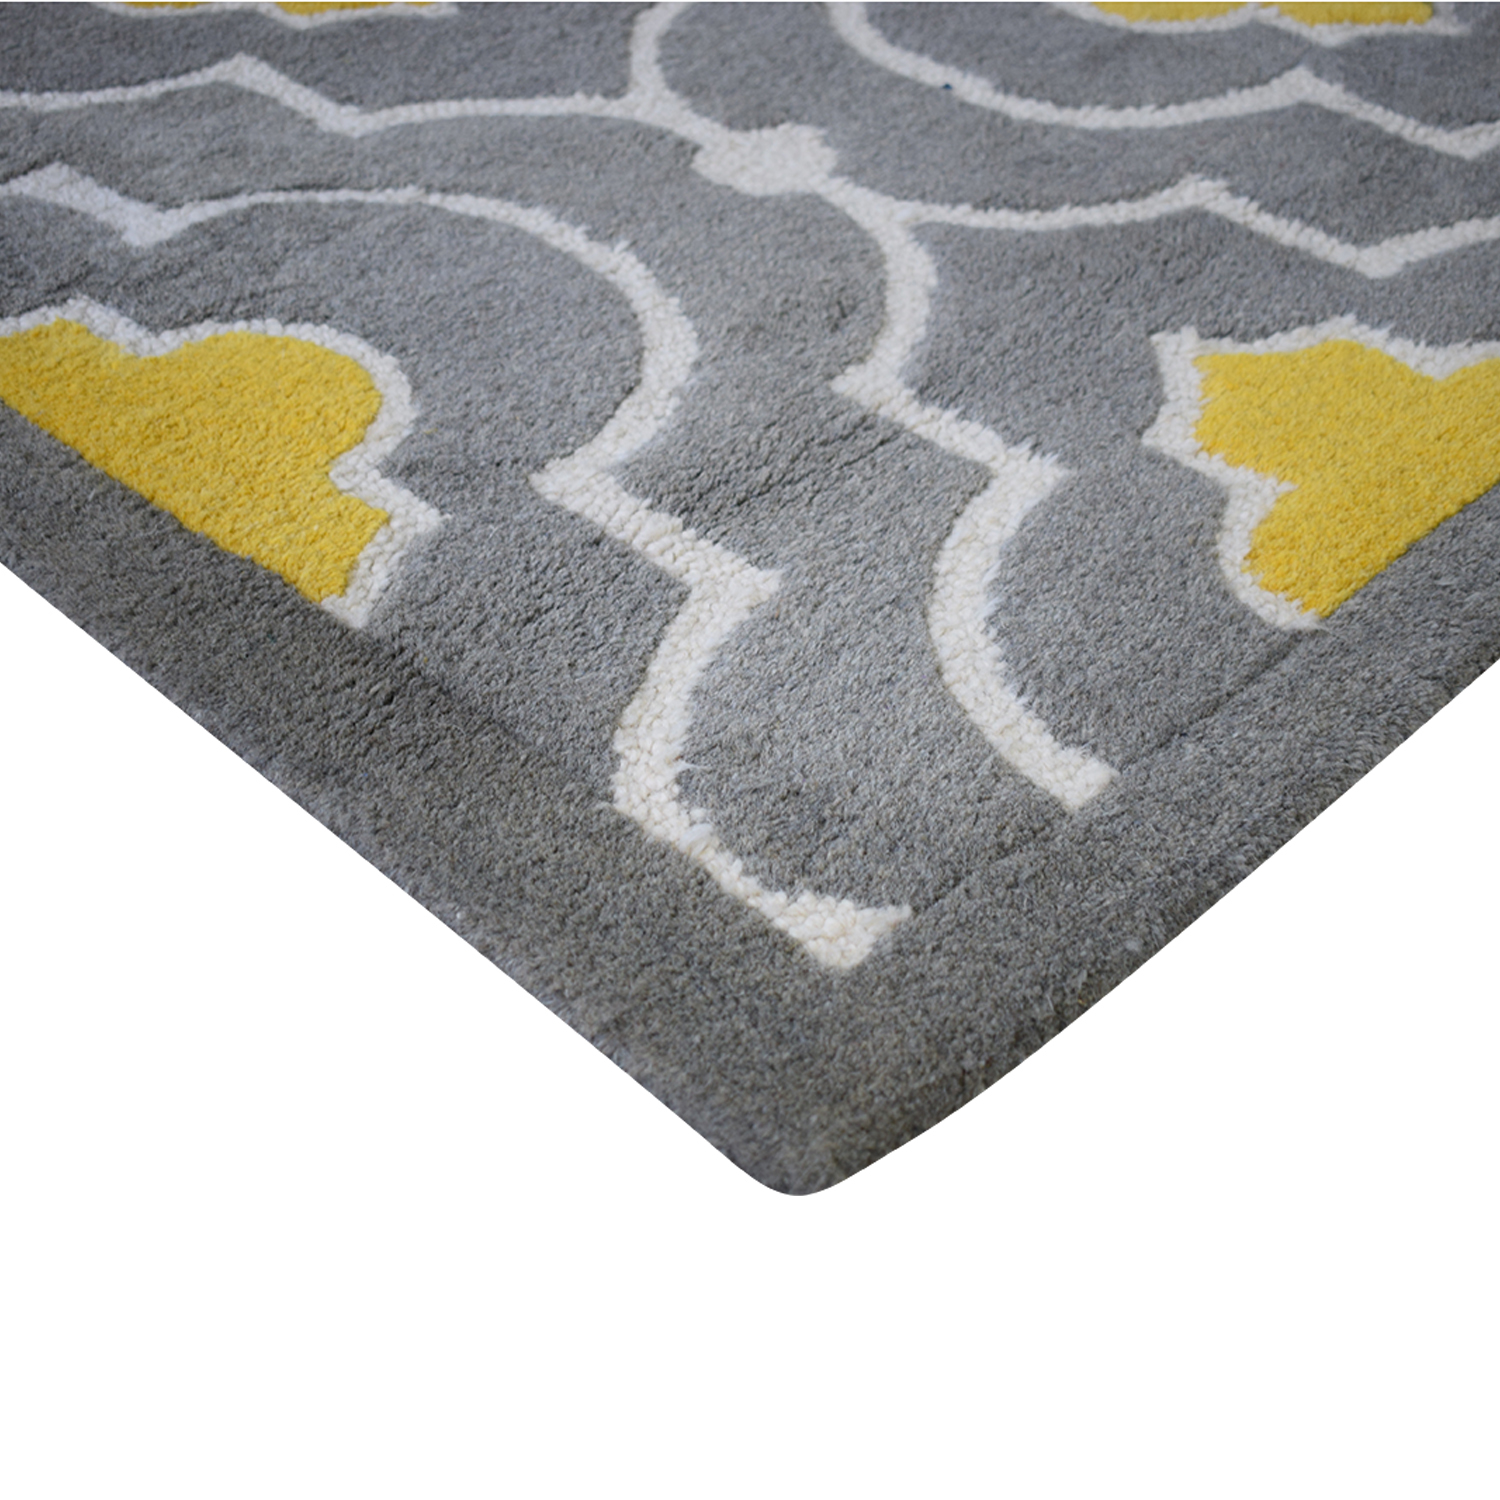 shop Loloi Loloi Brighton Grey and Yellow Rug online